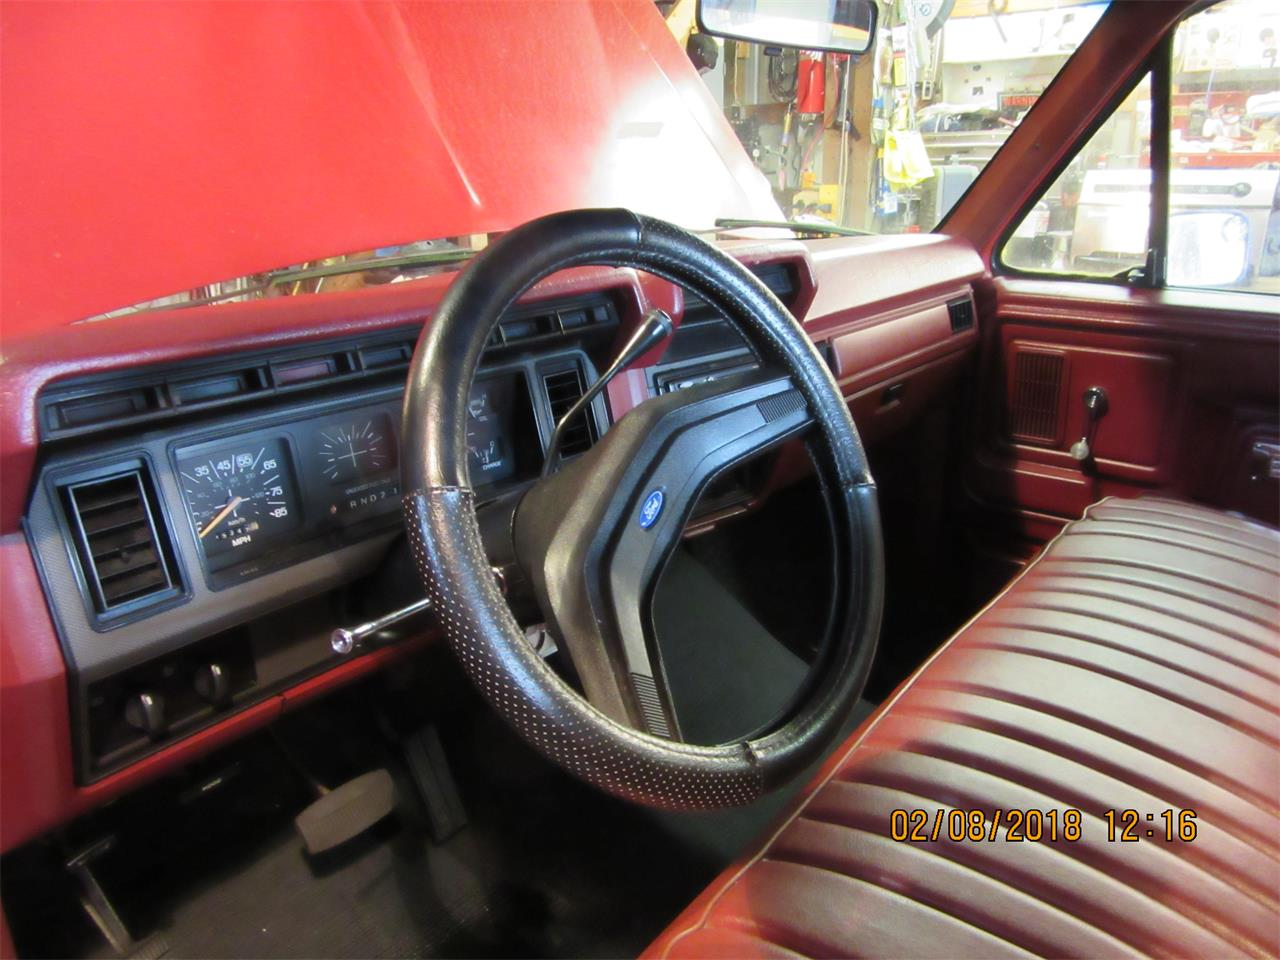 1985 Ford F150 for sale in PUYALLUP, WA – photo 8